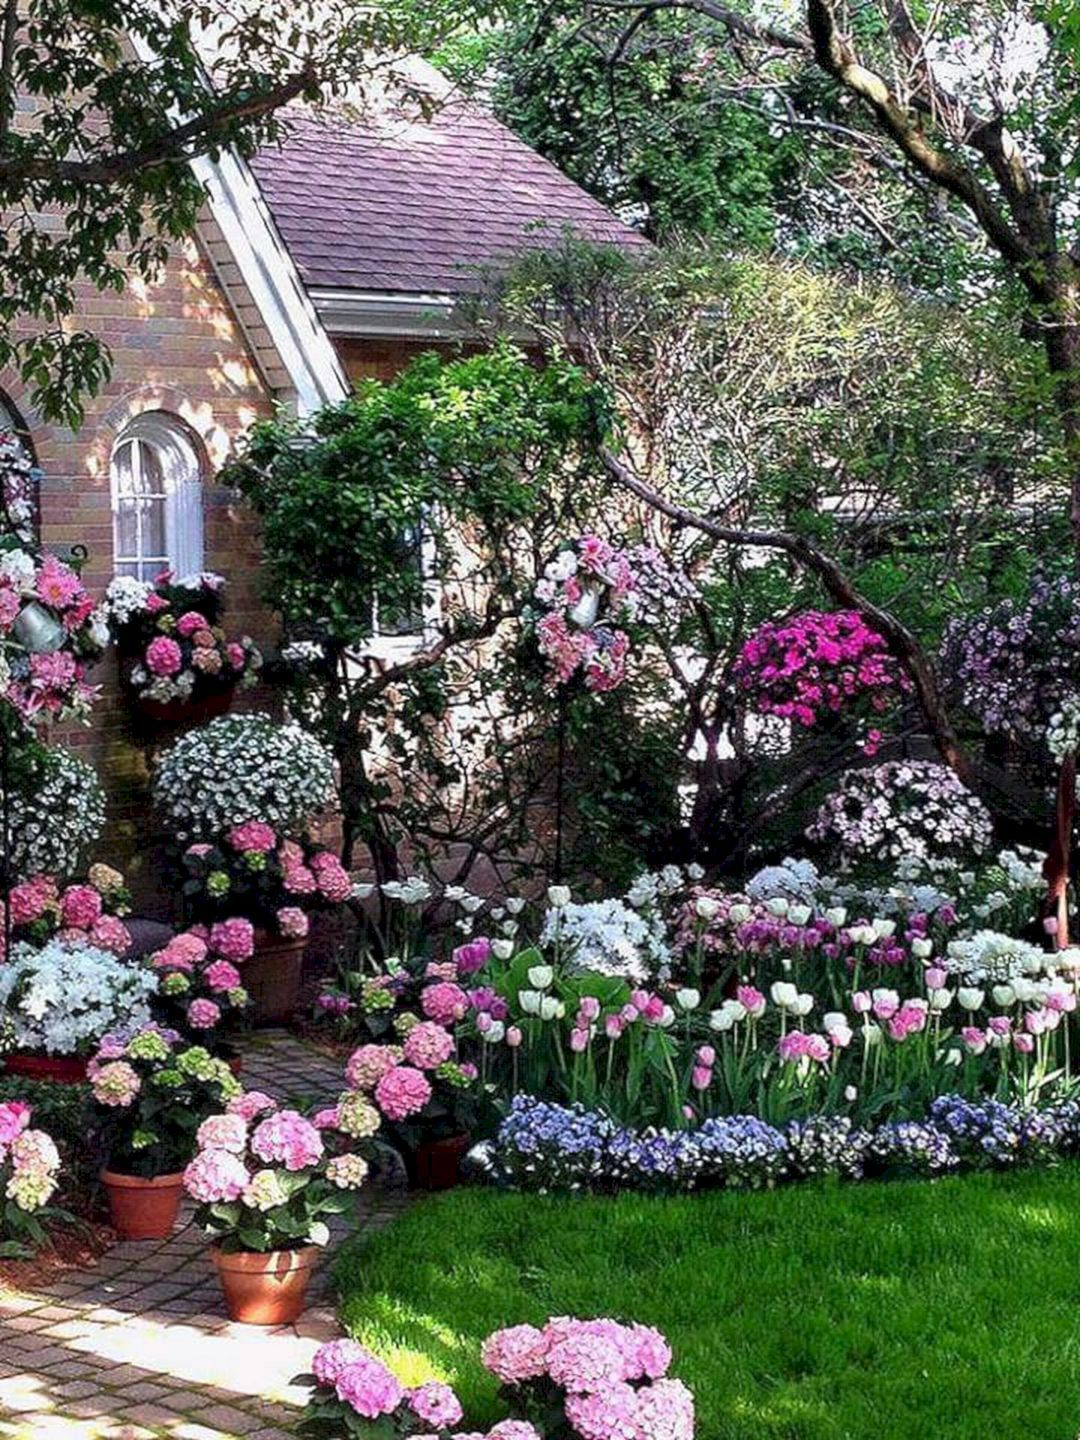 50 Most Beautiful Hydrangeas Landscaping Ideas To Inspire You 01